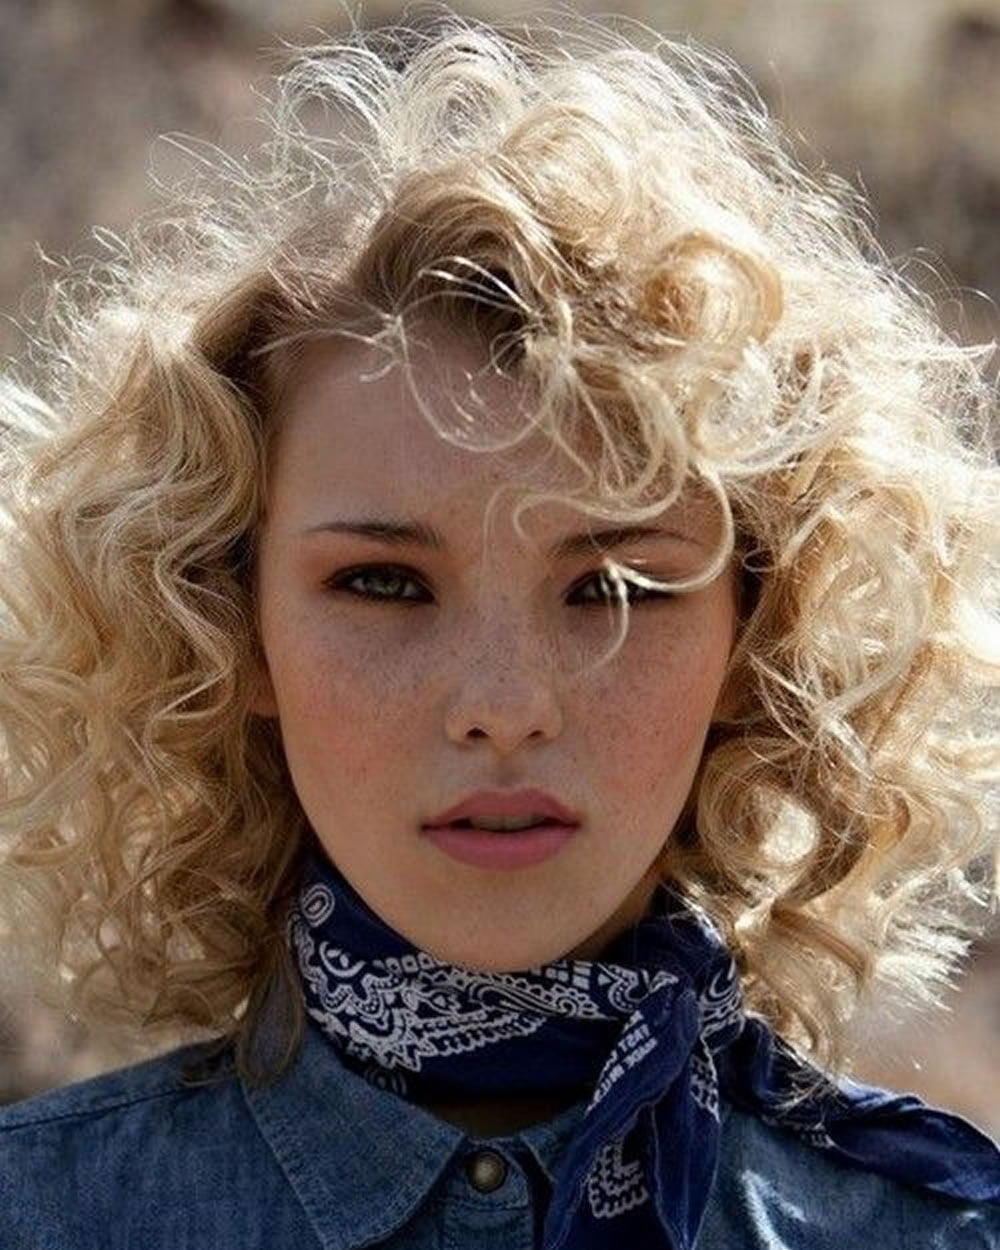 22 Trendy Short Bob Haircut & Hairstyles for Ladies in 2020-2021 - Page 3 - HAIRSTYLES